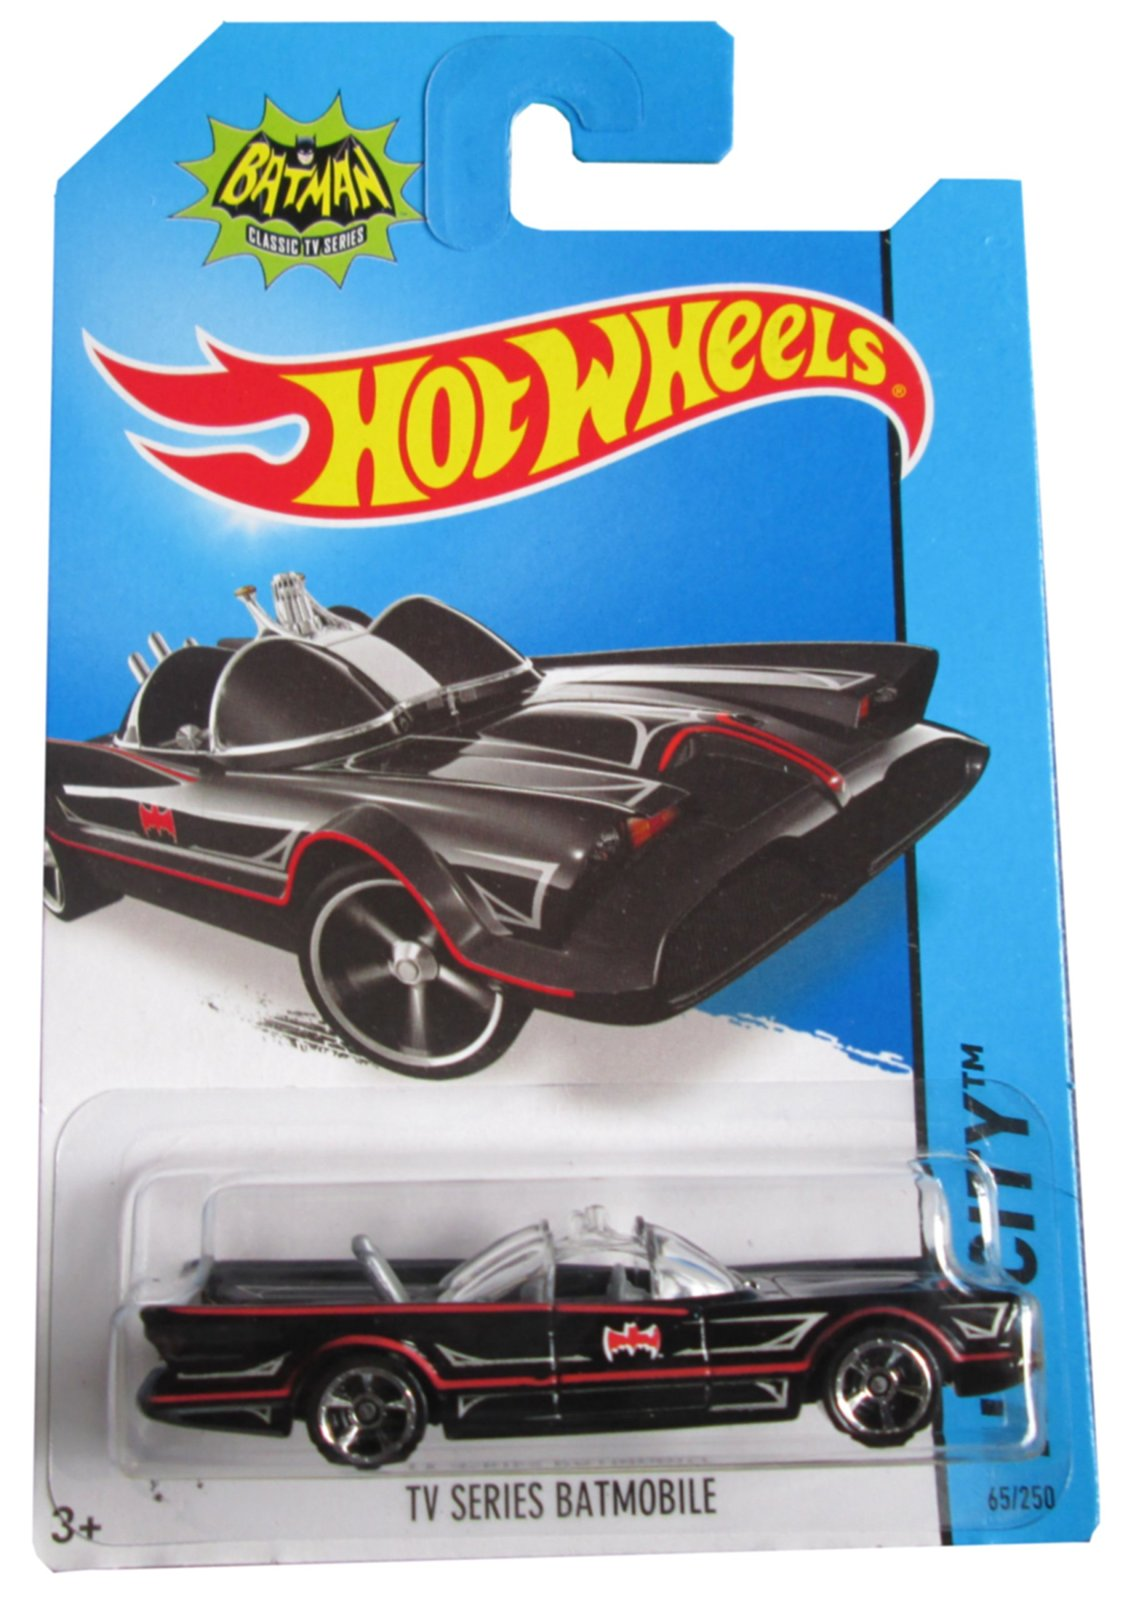 Primary image for 2014 Hot Wheels Hw City 65/250 - TV Series Batmobile [Brand New]